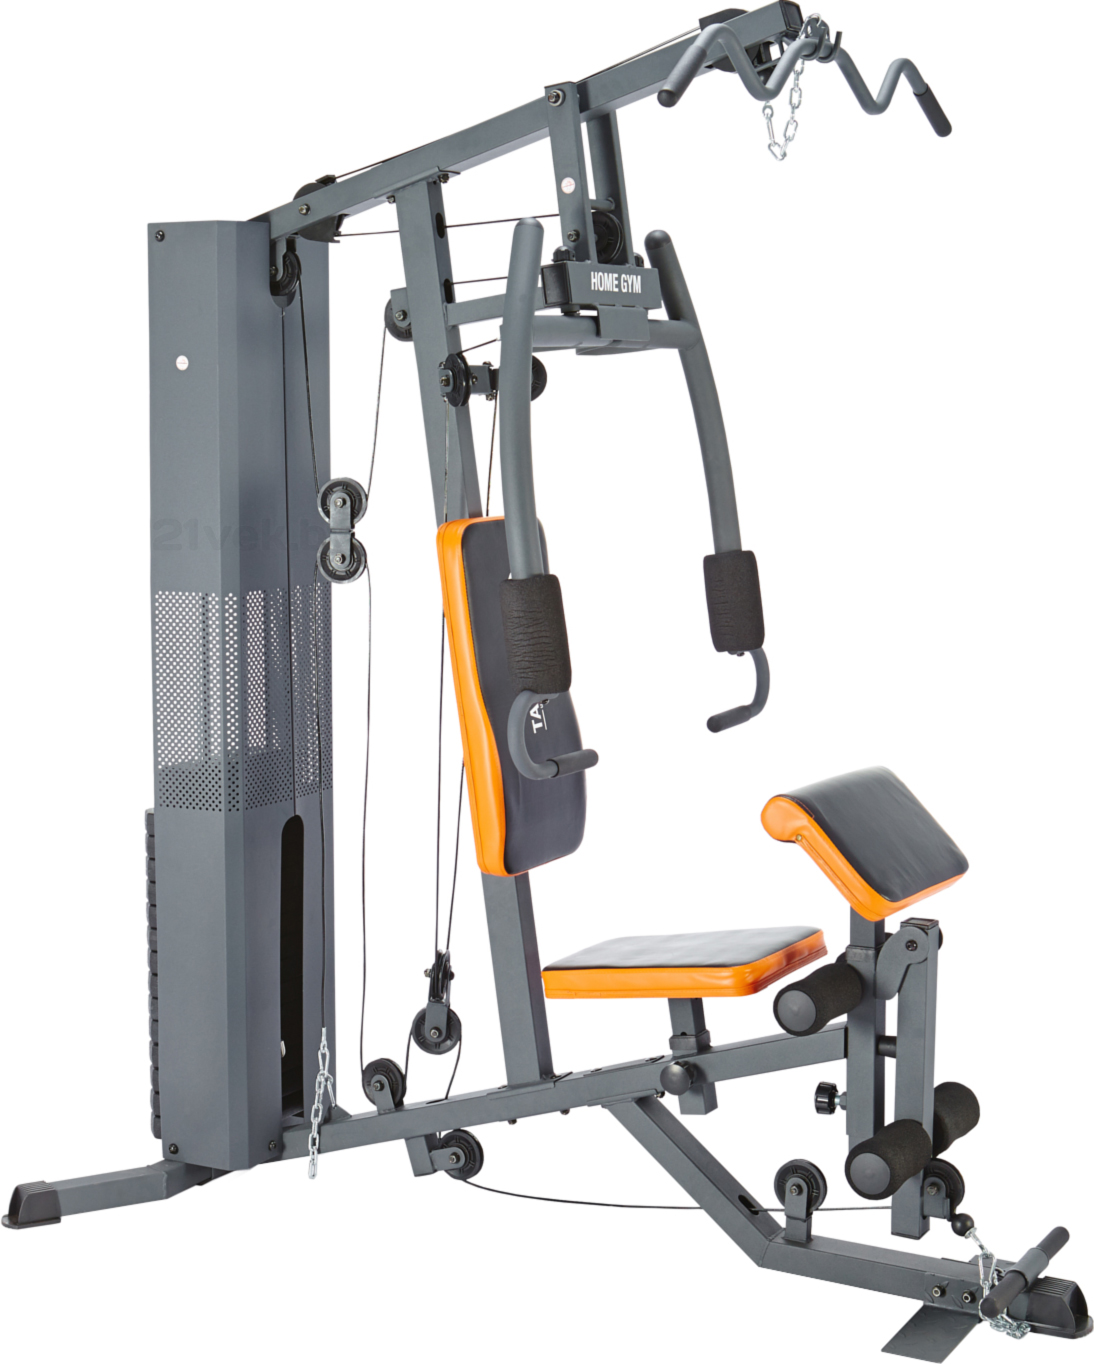 Home Gym KG980 21vek.by 6000000.000